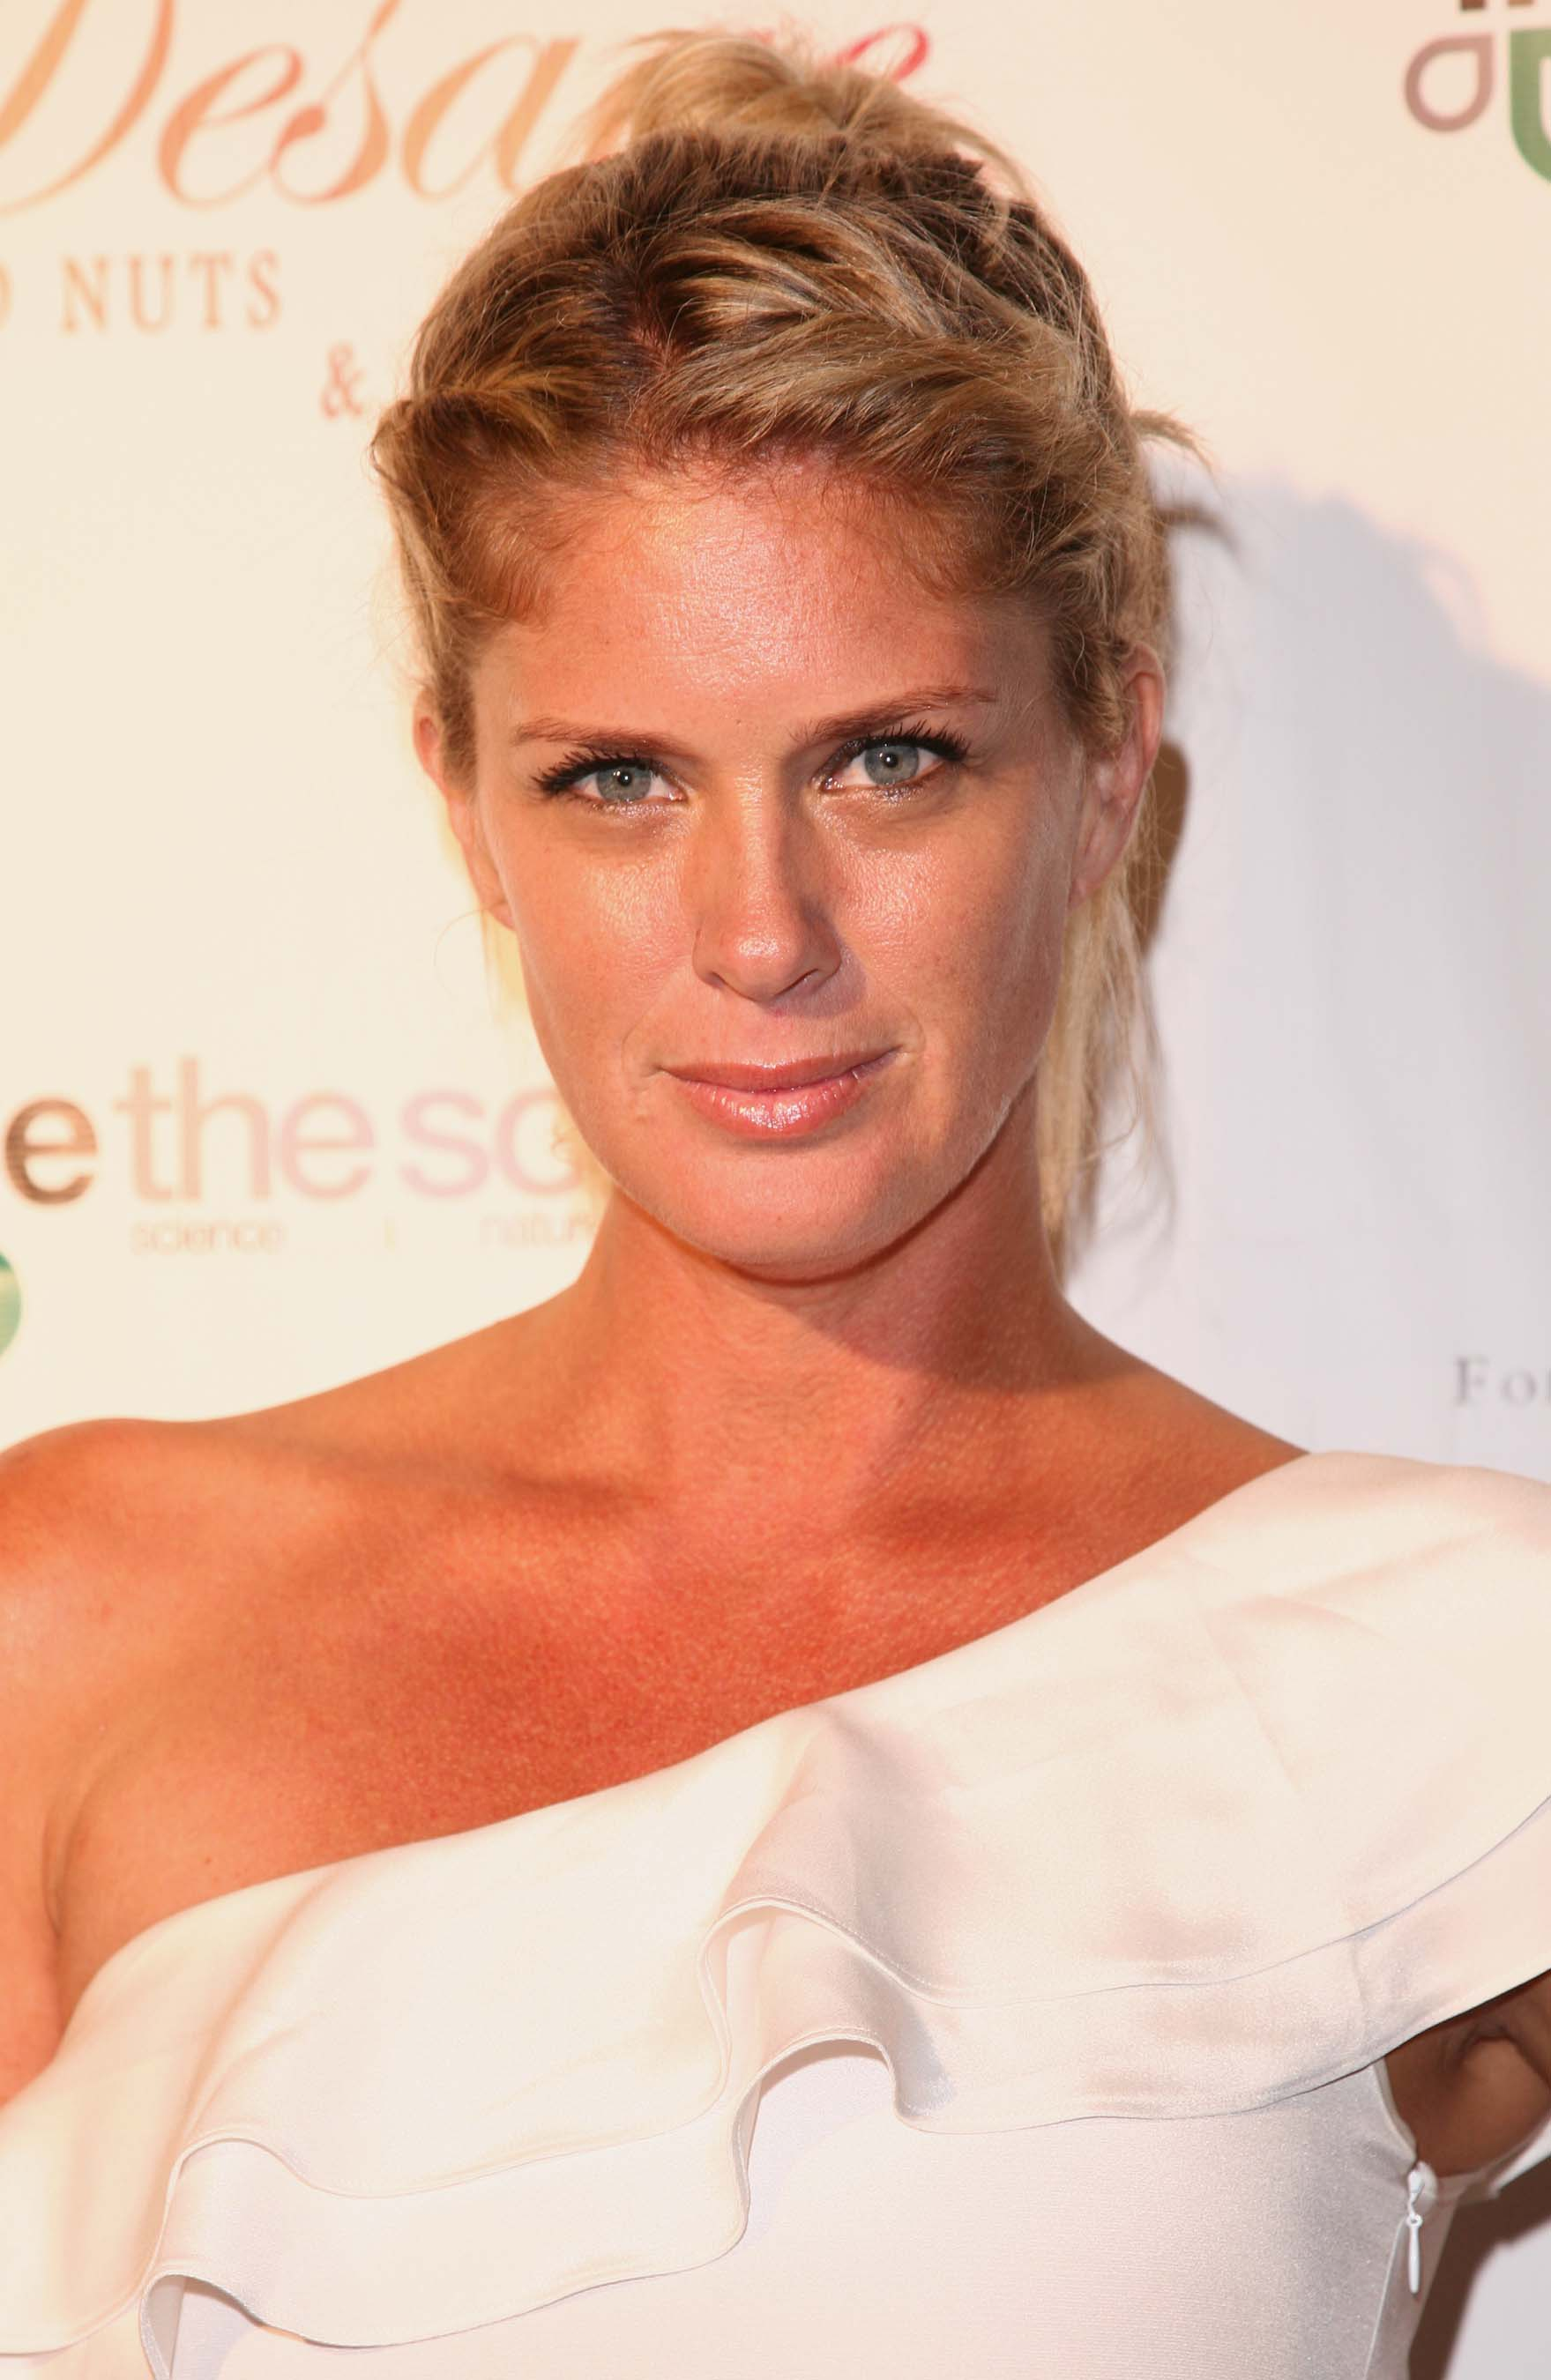 celebrity photos rachel hunter rachel hunter photo 15 0 vote Rachel